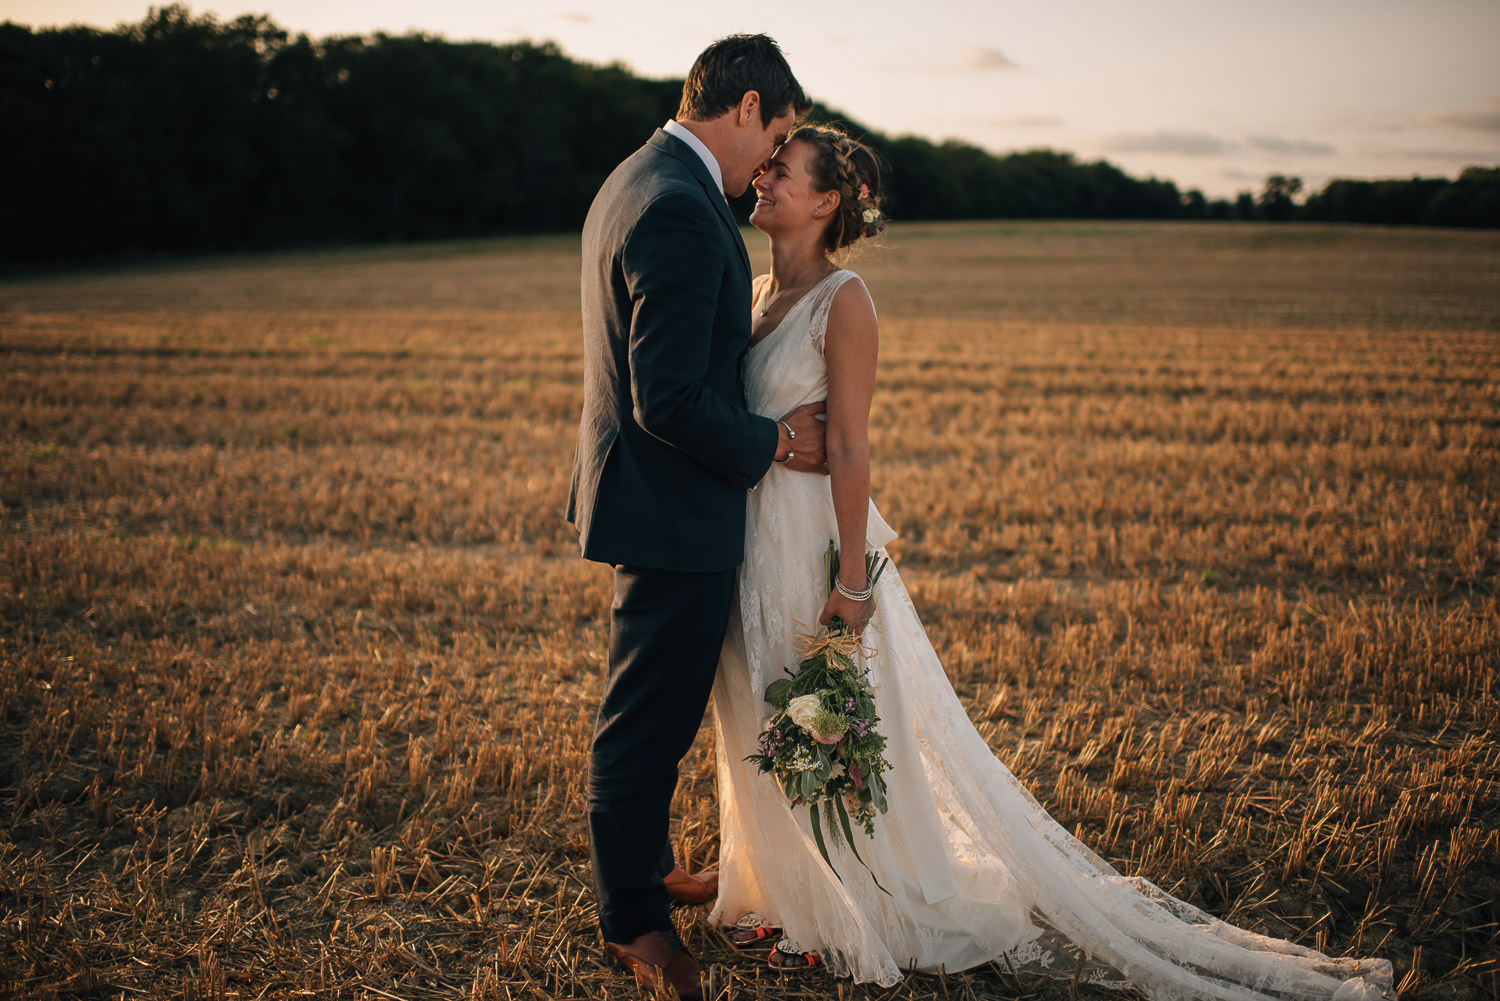 surrey festival wedding sunset by creative and alternative london wedding photographer the shannons photography